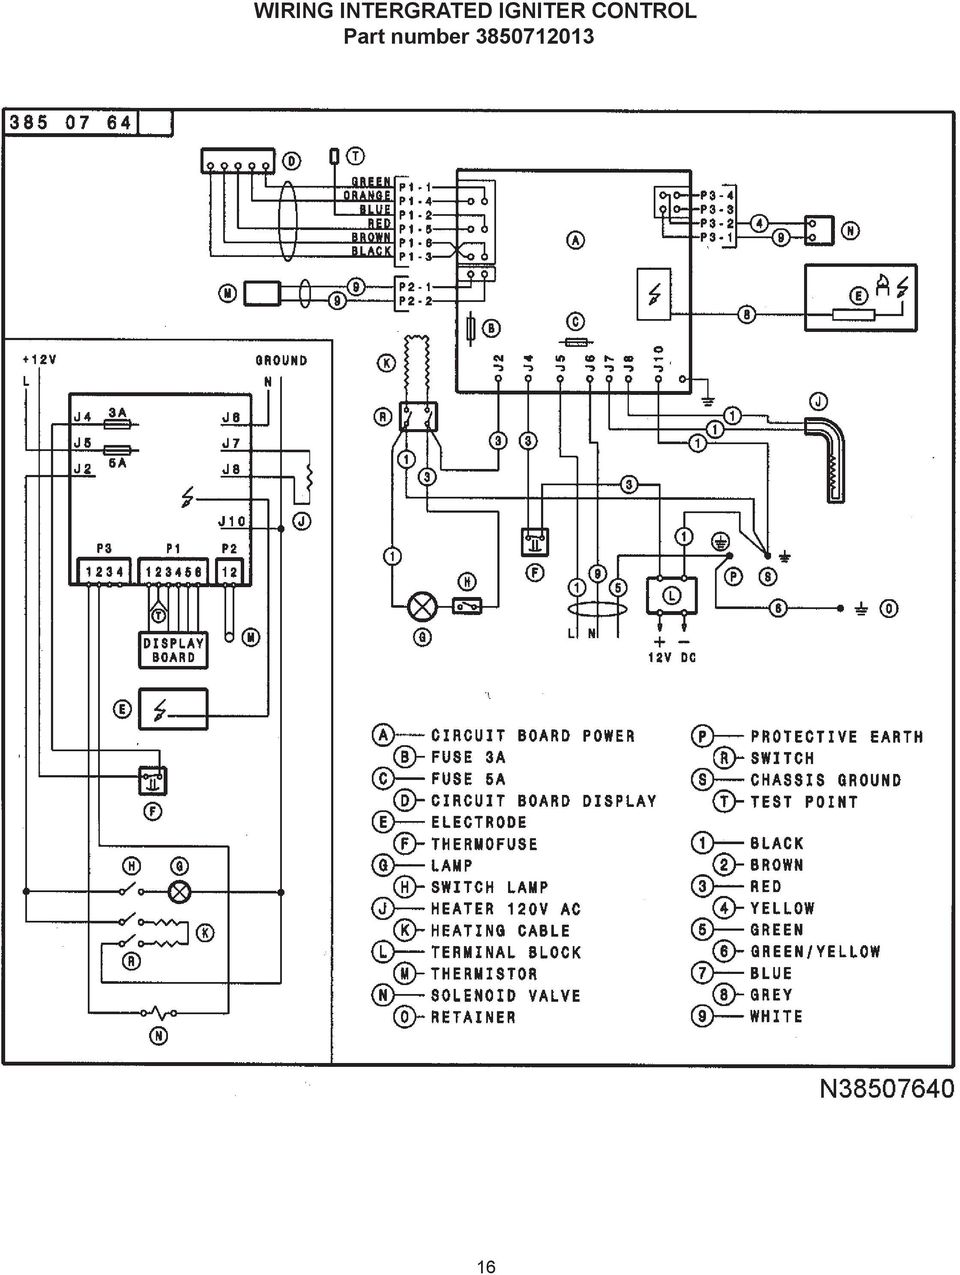 page_17 Waeco Refrigerator Wiring Diagram on estate refrigerator diagram, frigidaire oven diagram, whirlpool refrigerator diagram, amana refrigerator diagram, refrigerator relay diagram, circuit diagram, refrigerator coil diagram, refrigerator condenser replacement, refrigerator motor diagram, refrigerator hardware diagram, refrigerator pump diagram, refrigerator diagnostic chart, refrigerator control diagram, samsung refrigerator diagram, refrigerator coolant leak, refrigerator cooling diagram, refrigerator spec sheet, refrigerator piping diagram, side by side refrigerator diagram, electrolux canister vacuum housing diagram,